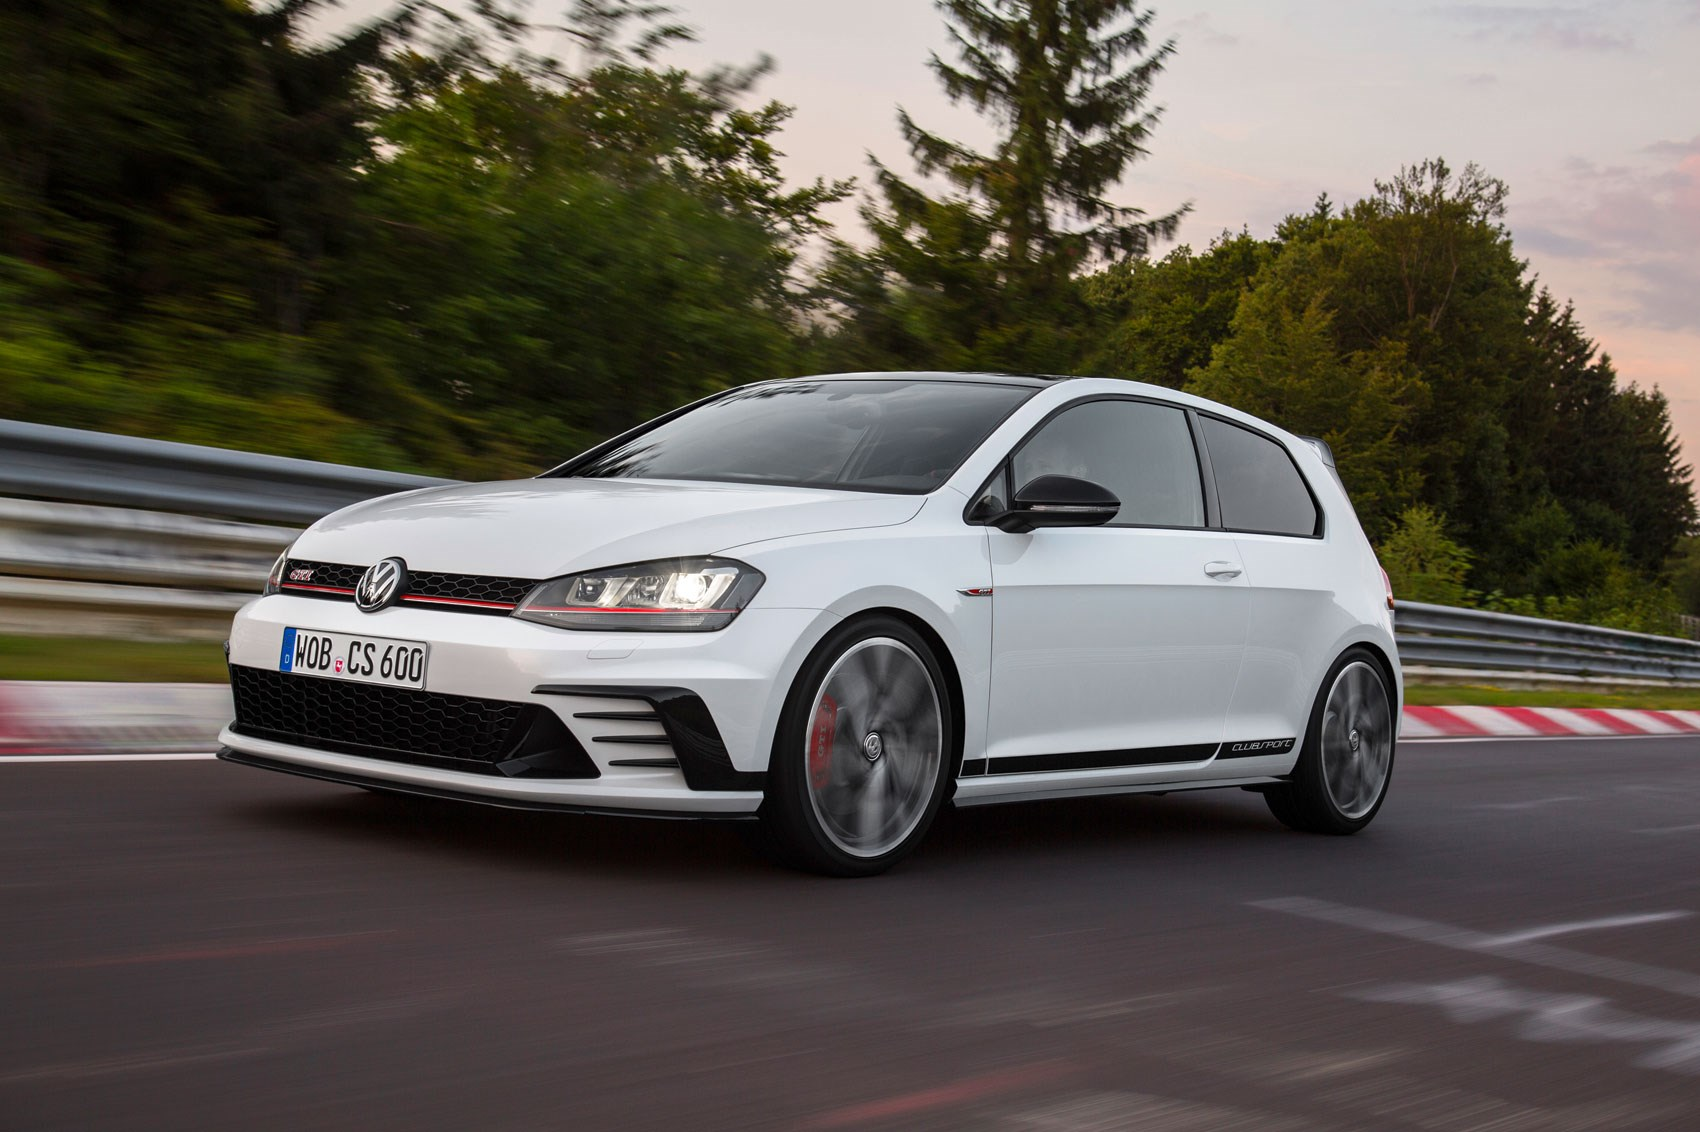 Volkswagen golf gti clubsport is the fastest golf gti yet